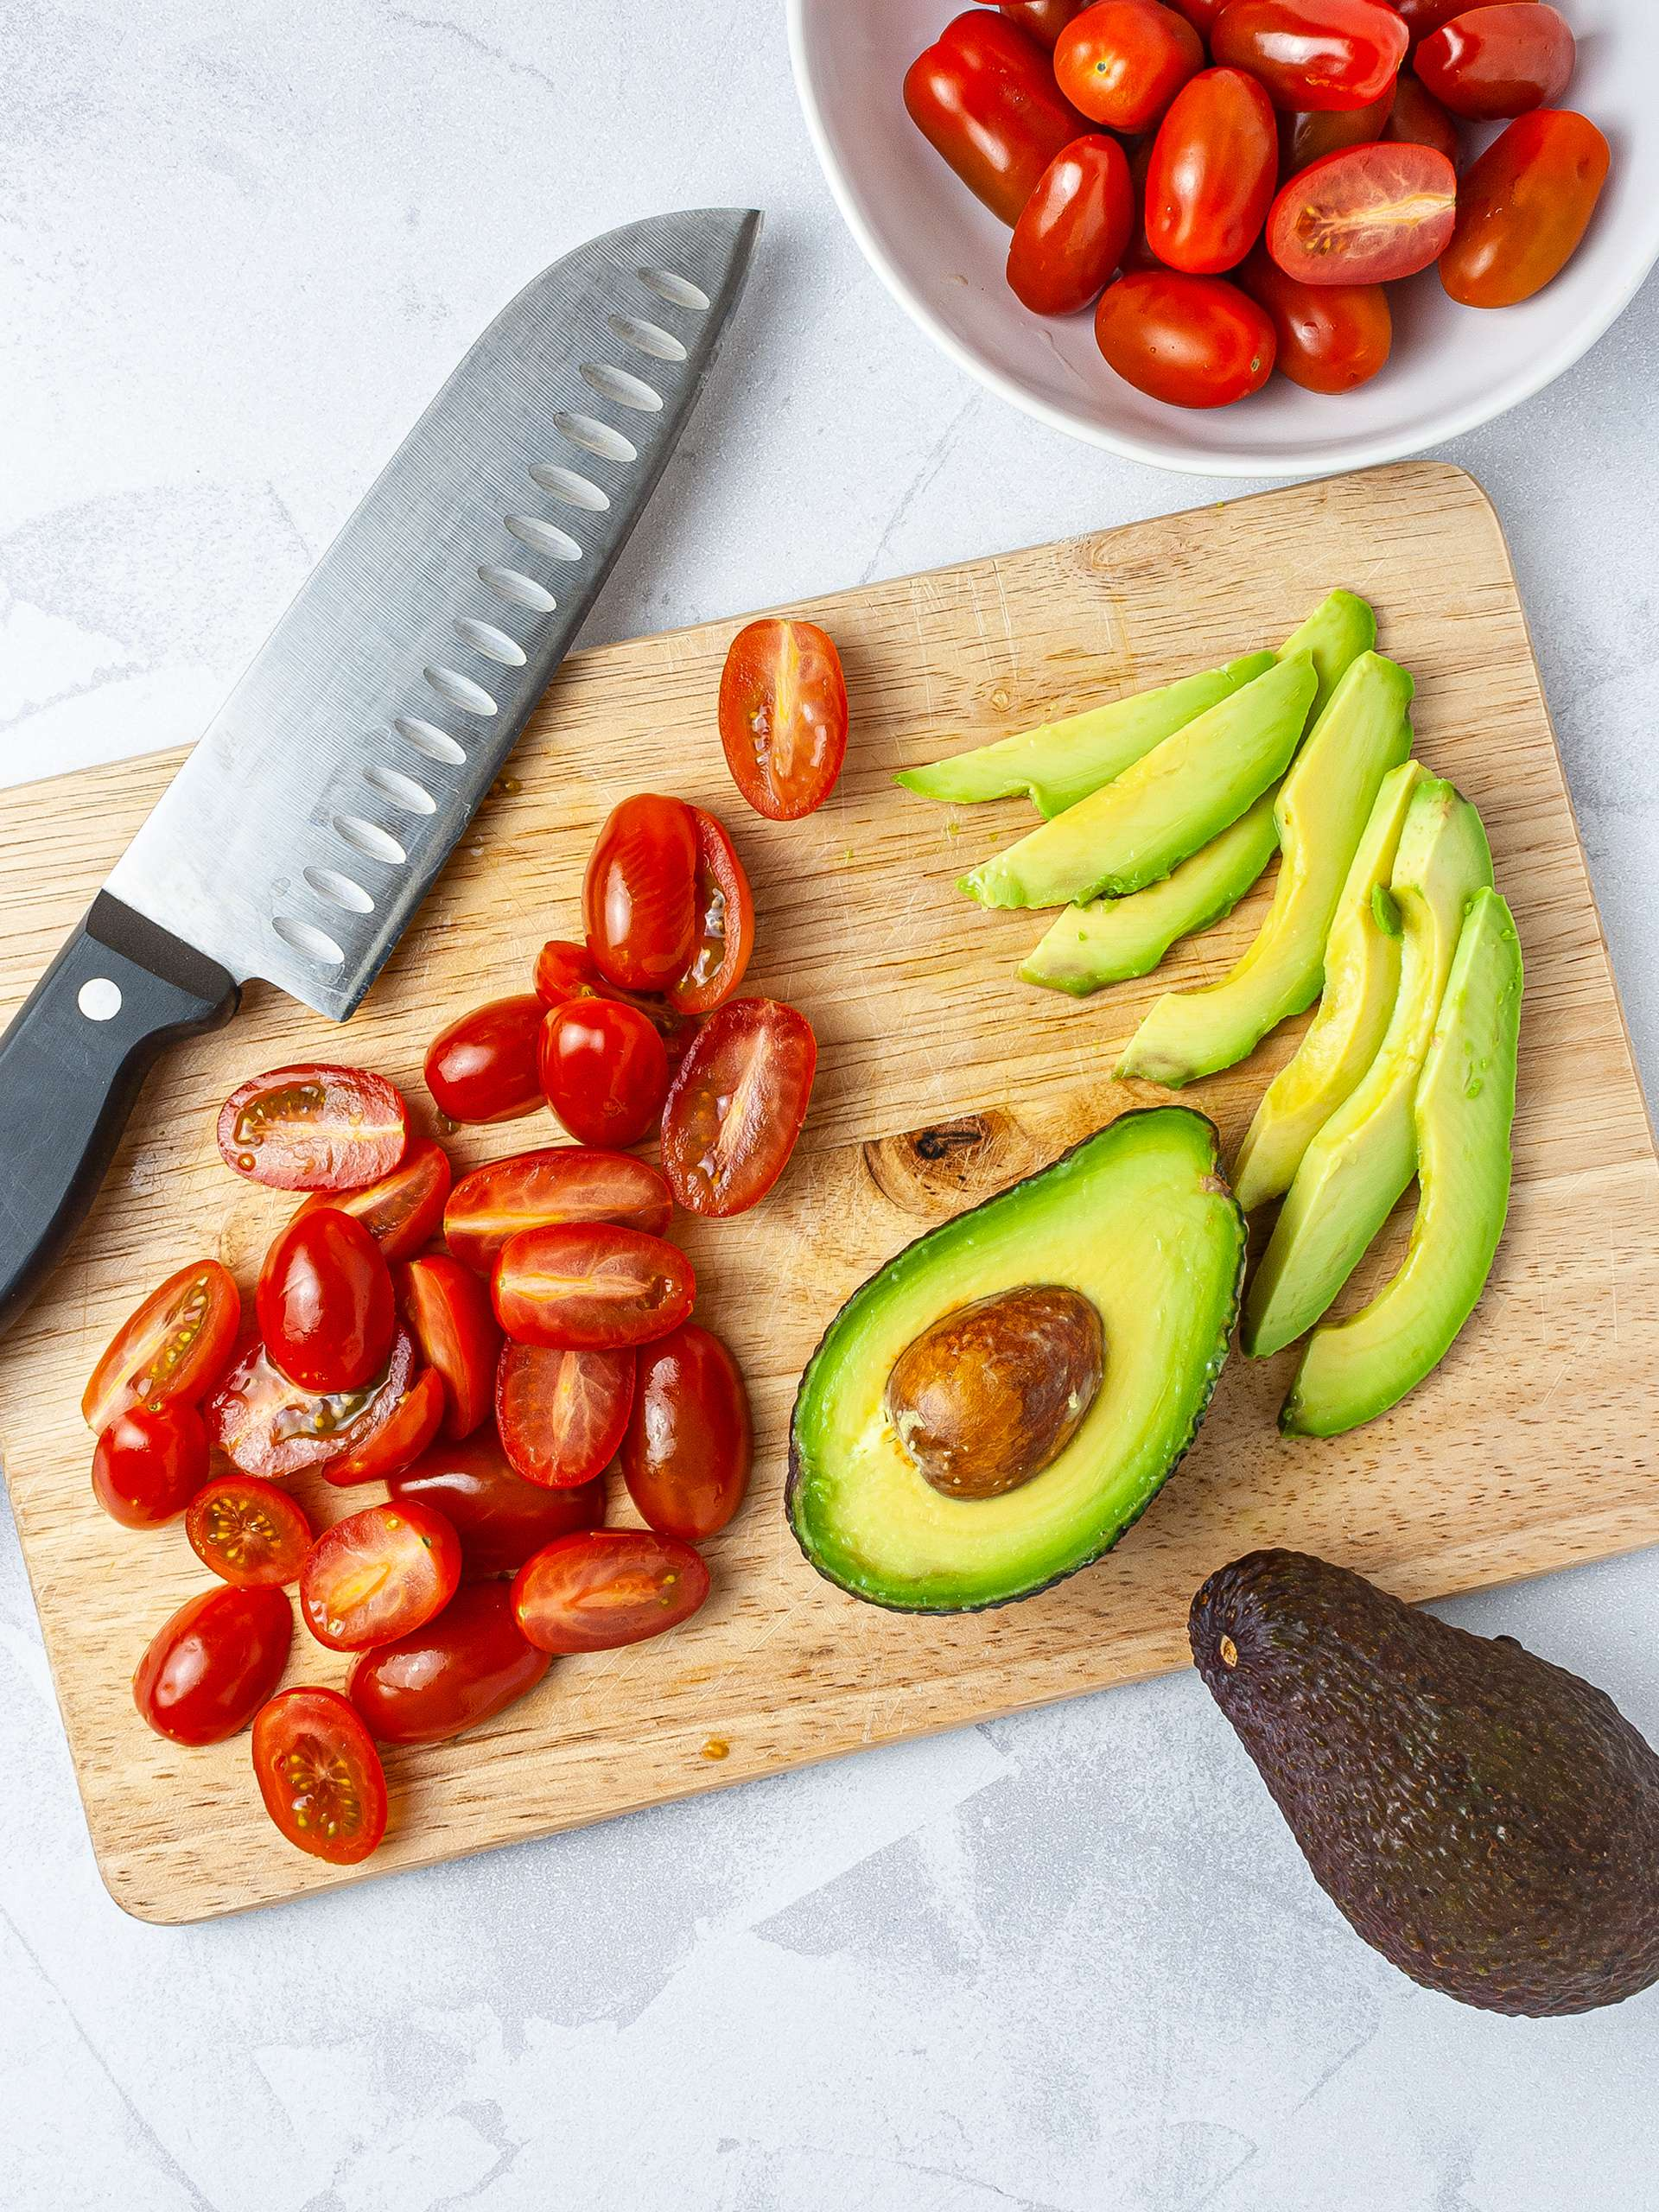 Halved tomatoes and sliced avocado on a chopping board.